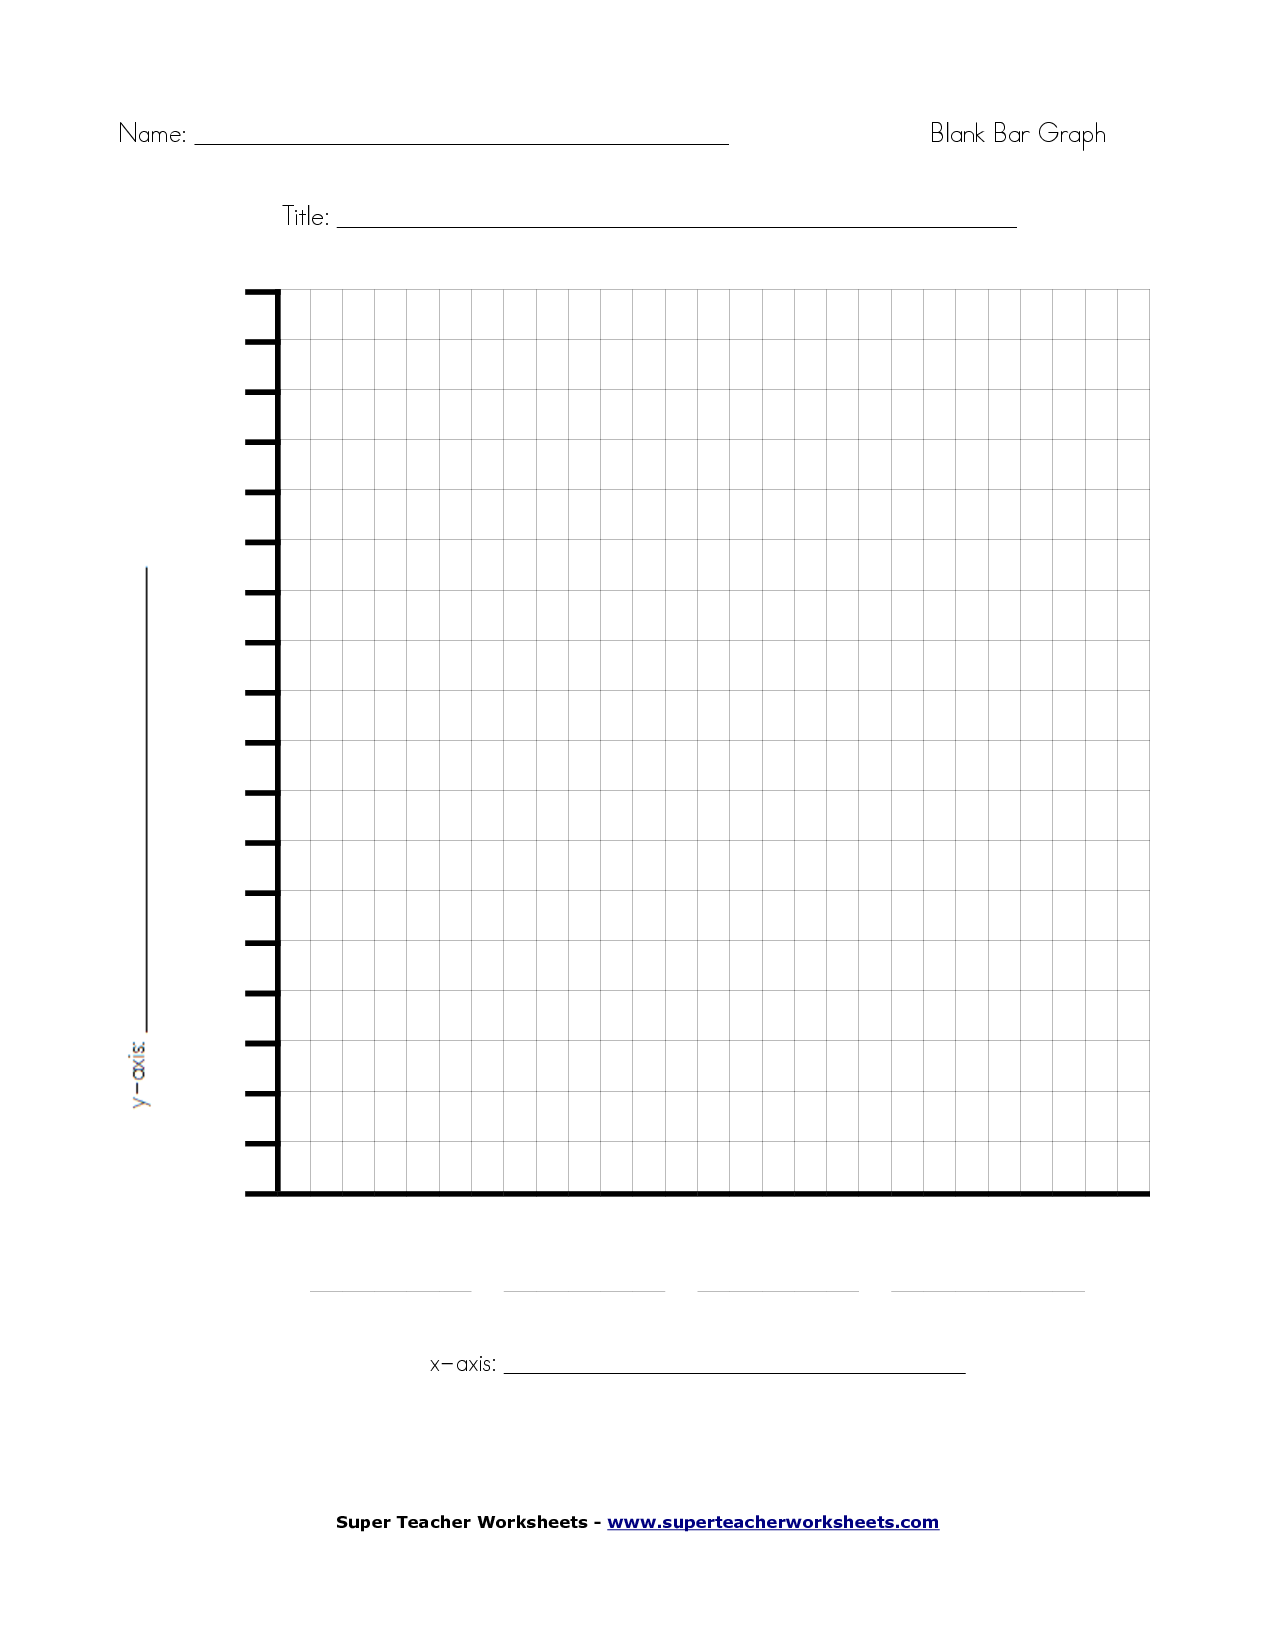 19 Best Images Of Super Teacher Worksheets Bar Graph